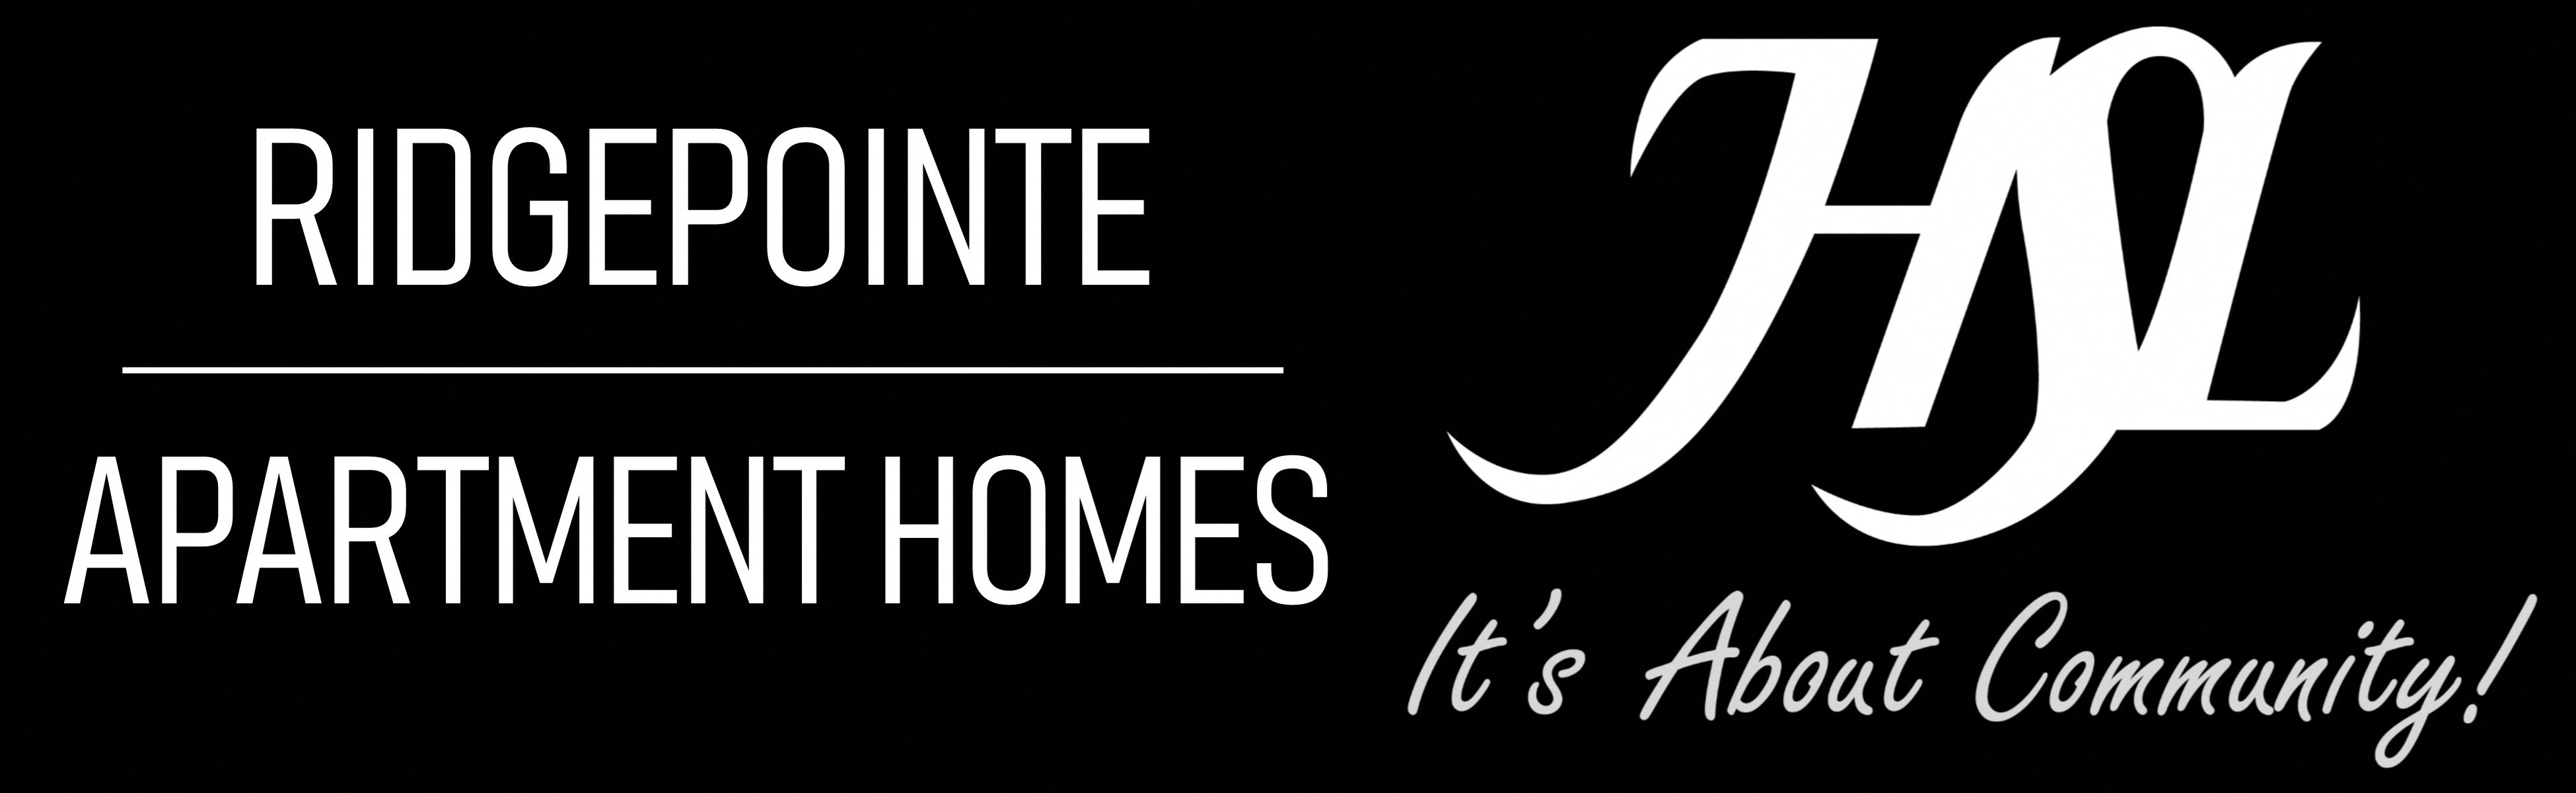 Ridgepointe Apartment Homes Logo